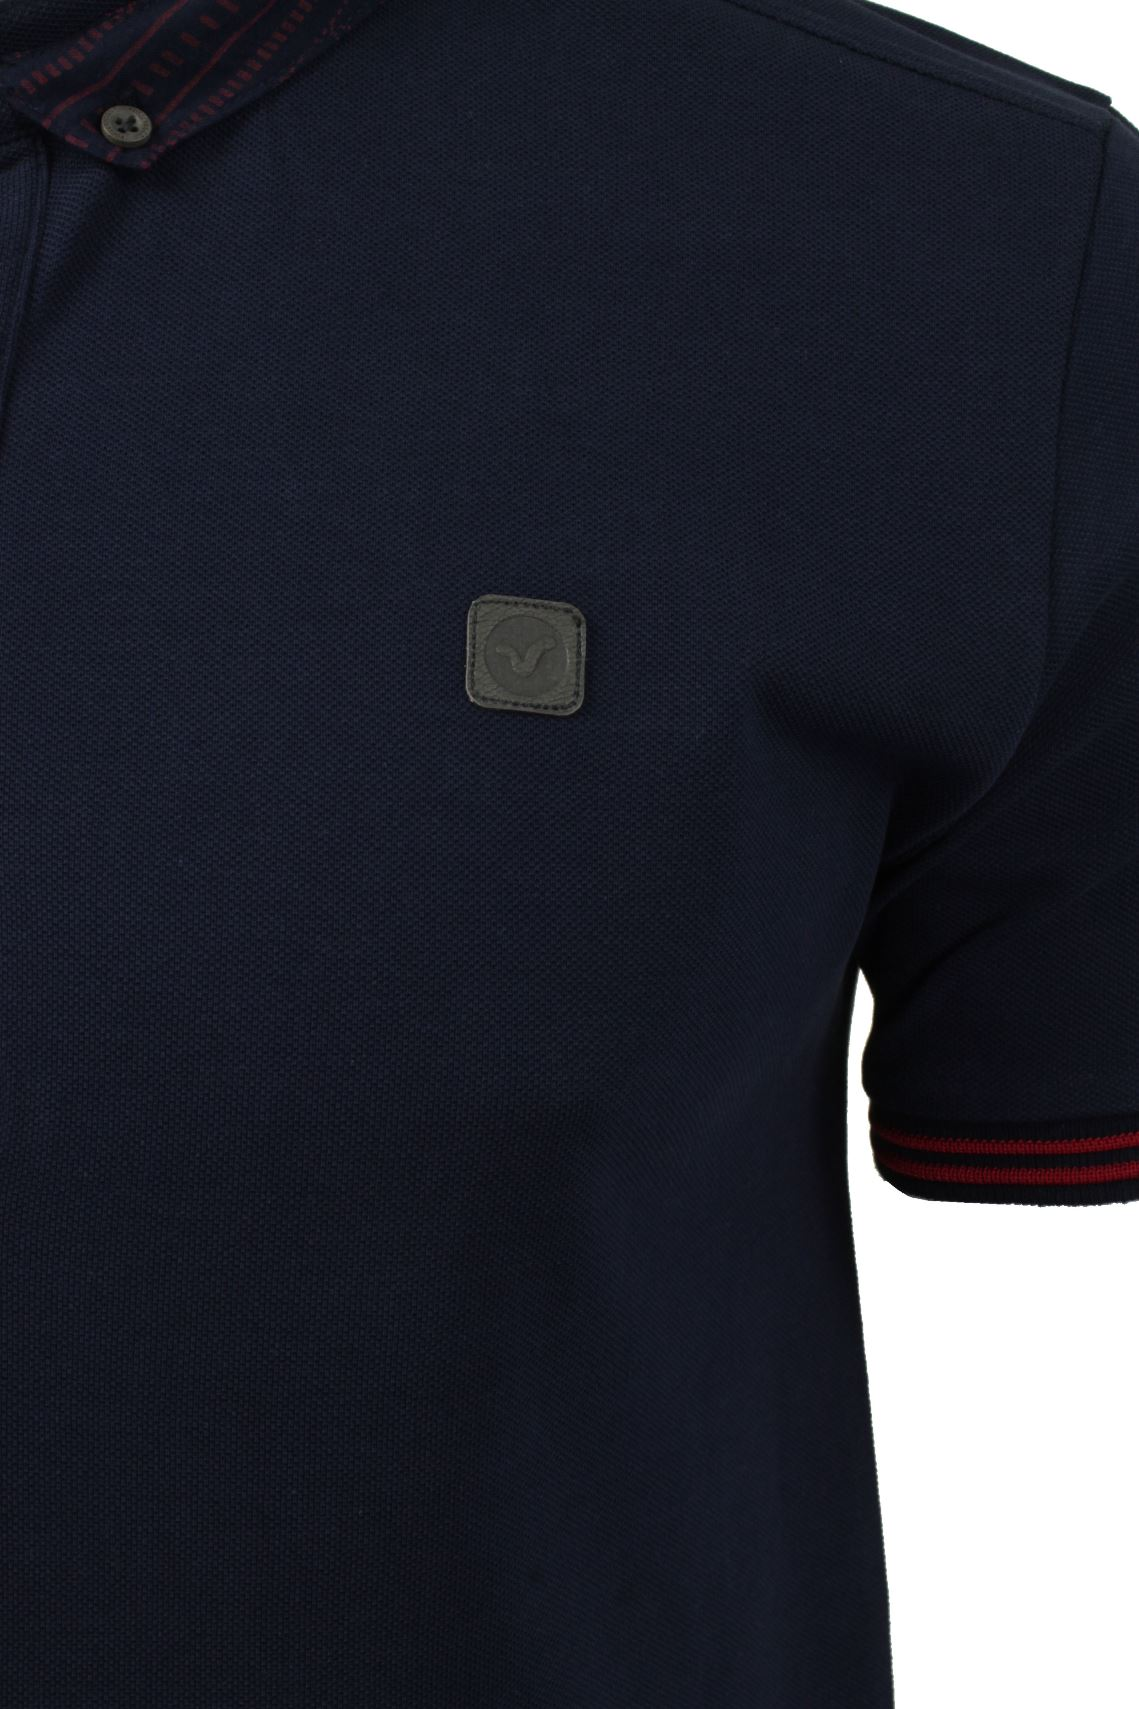 Mens-Polo-T-Shirt-by-Voi-Jeans-039-Winters-039 thumbnail 7